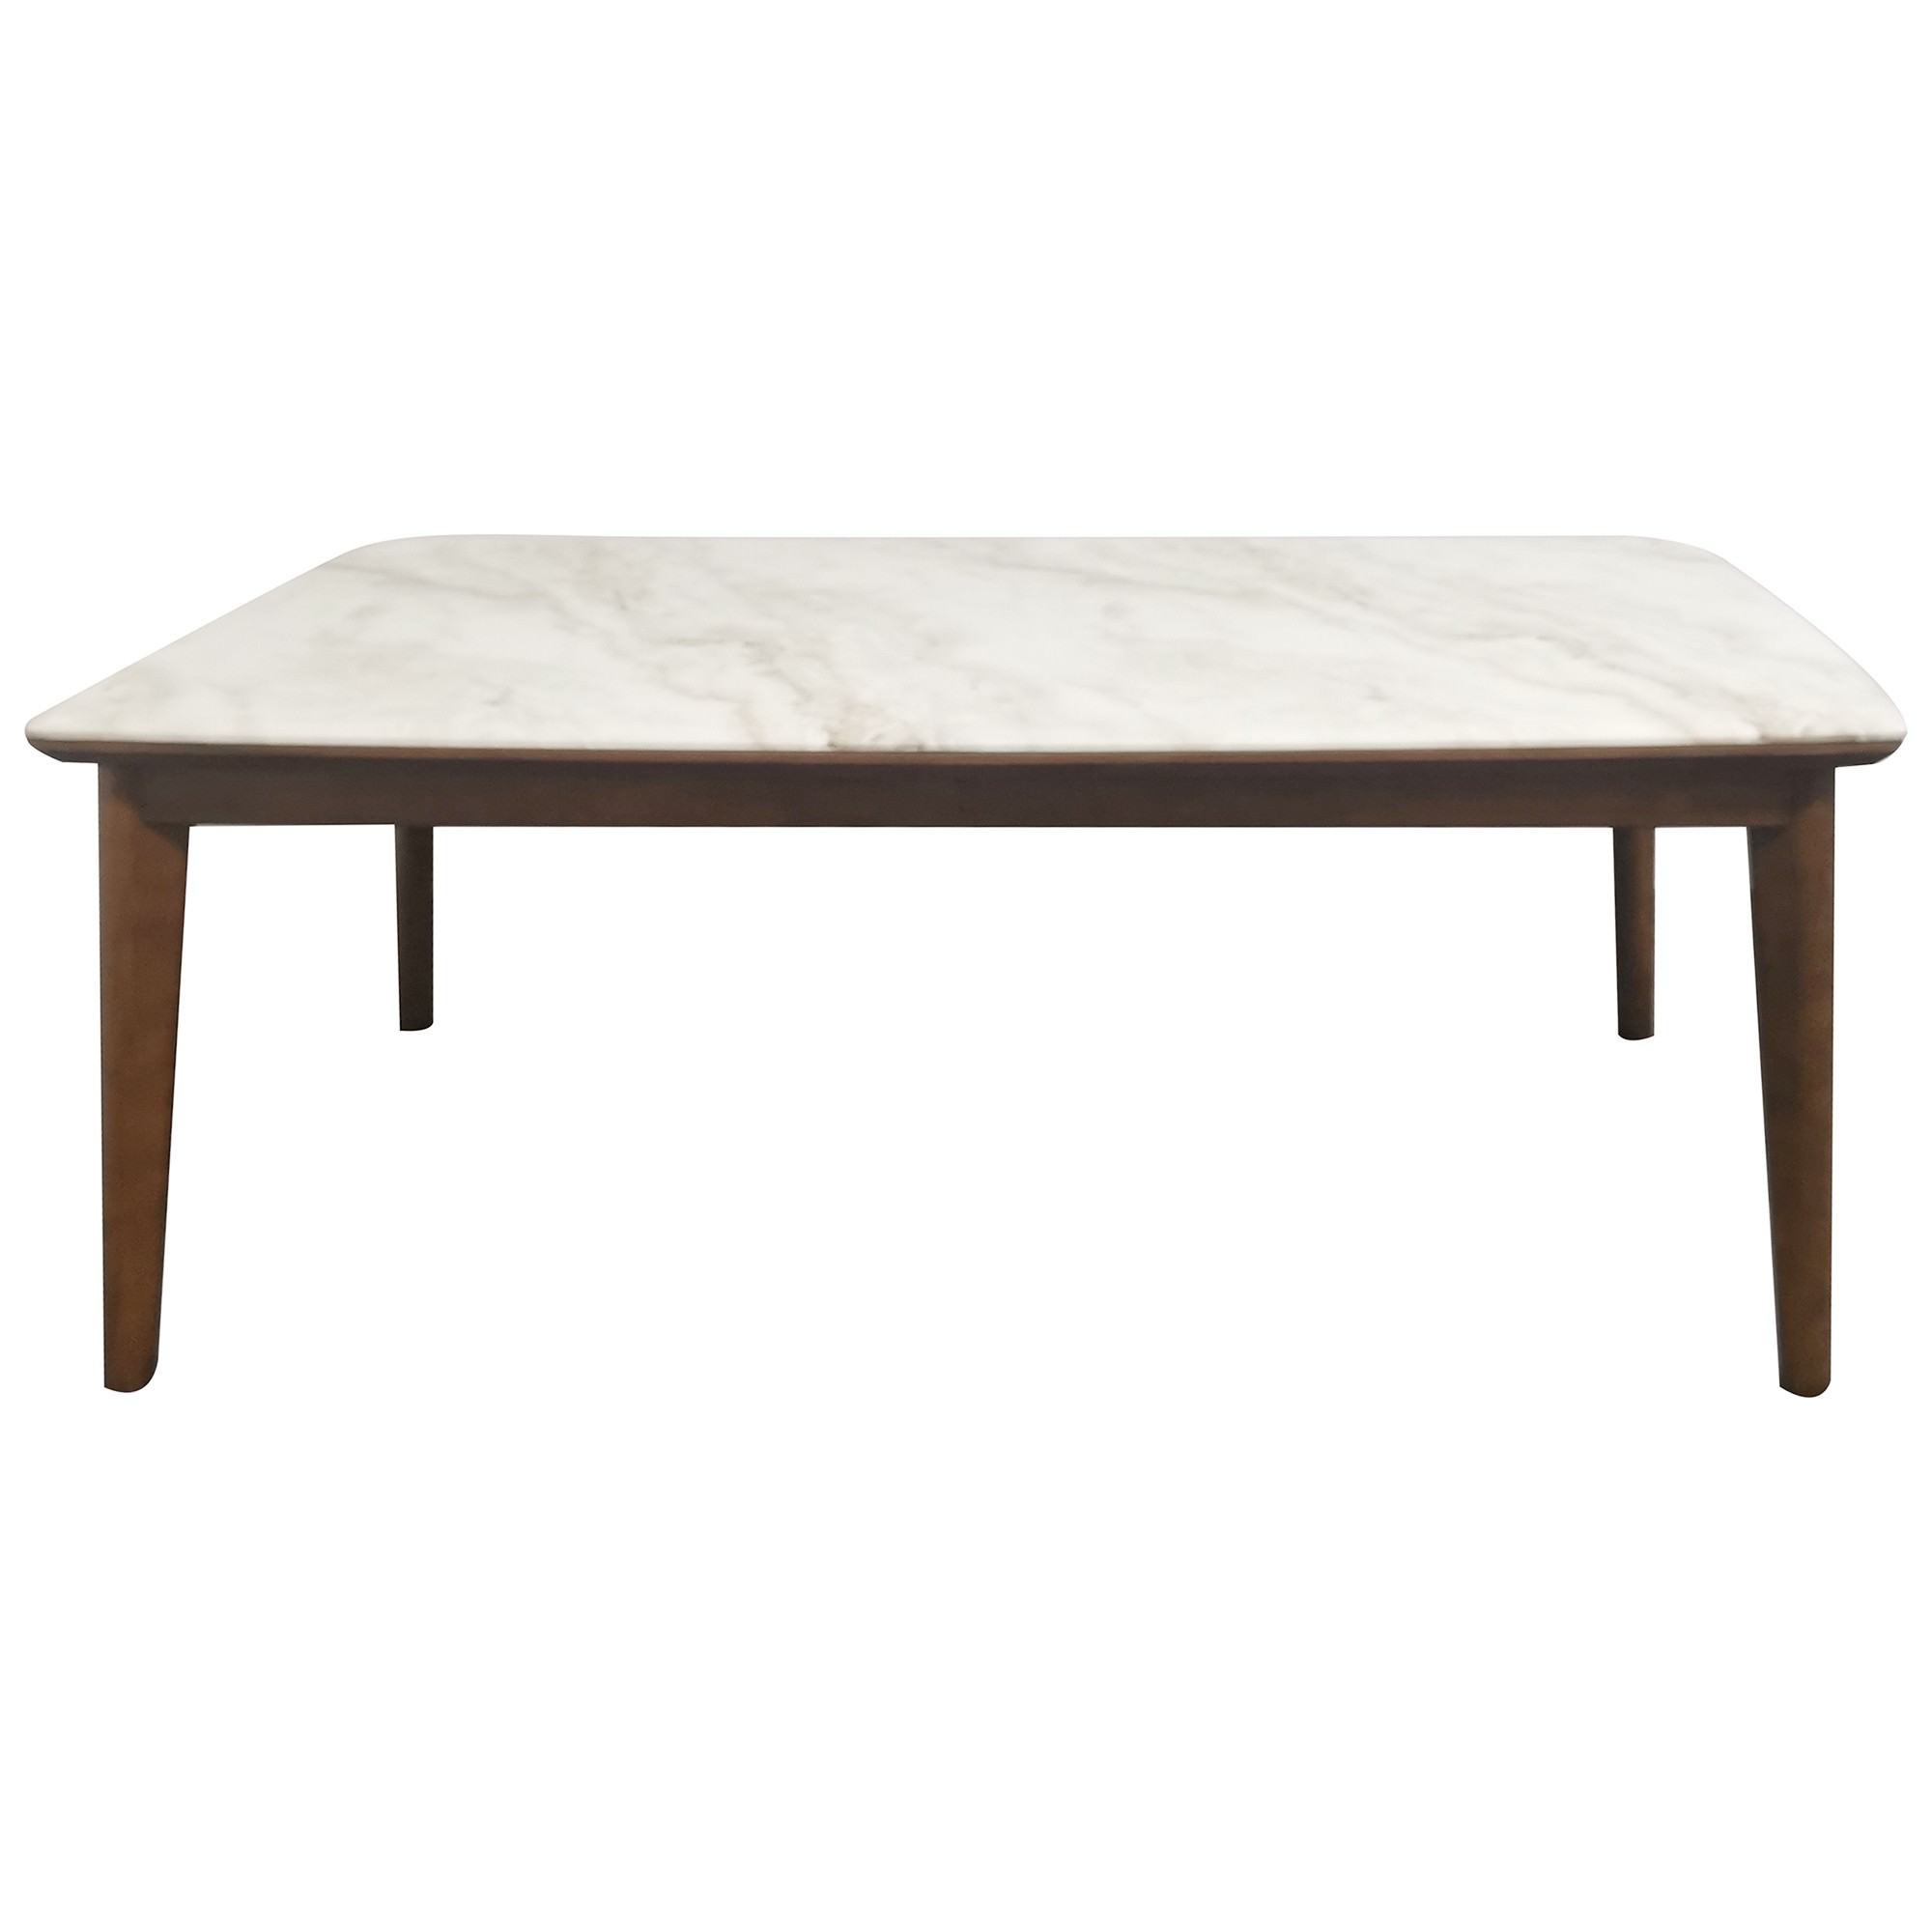 Coscona Stone Top Modern Dining Table, 180cm